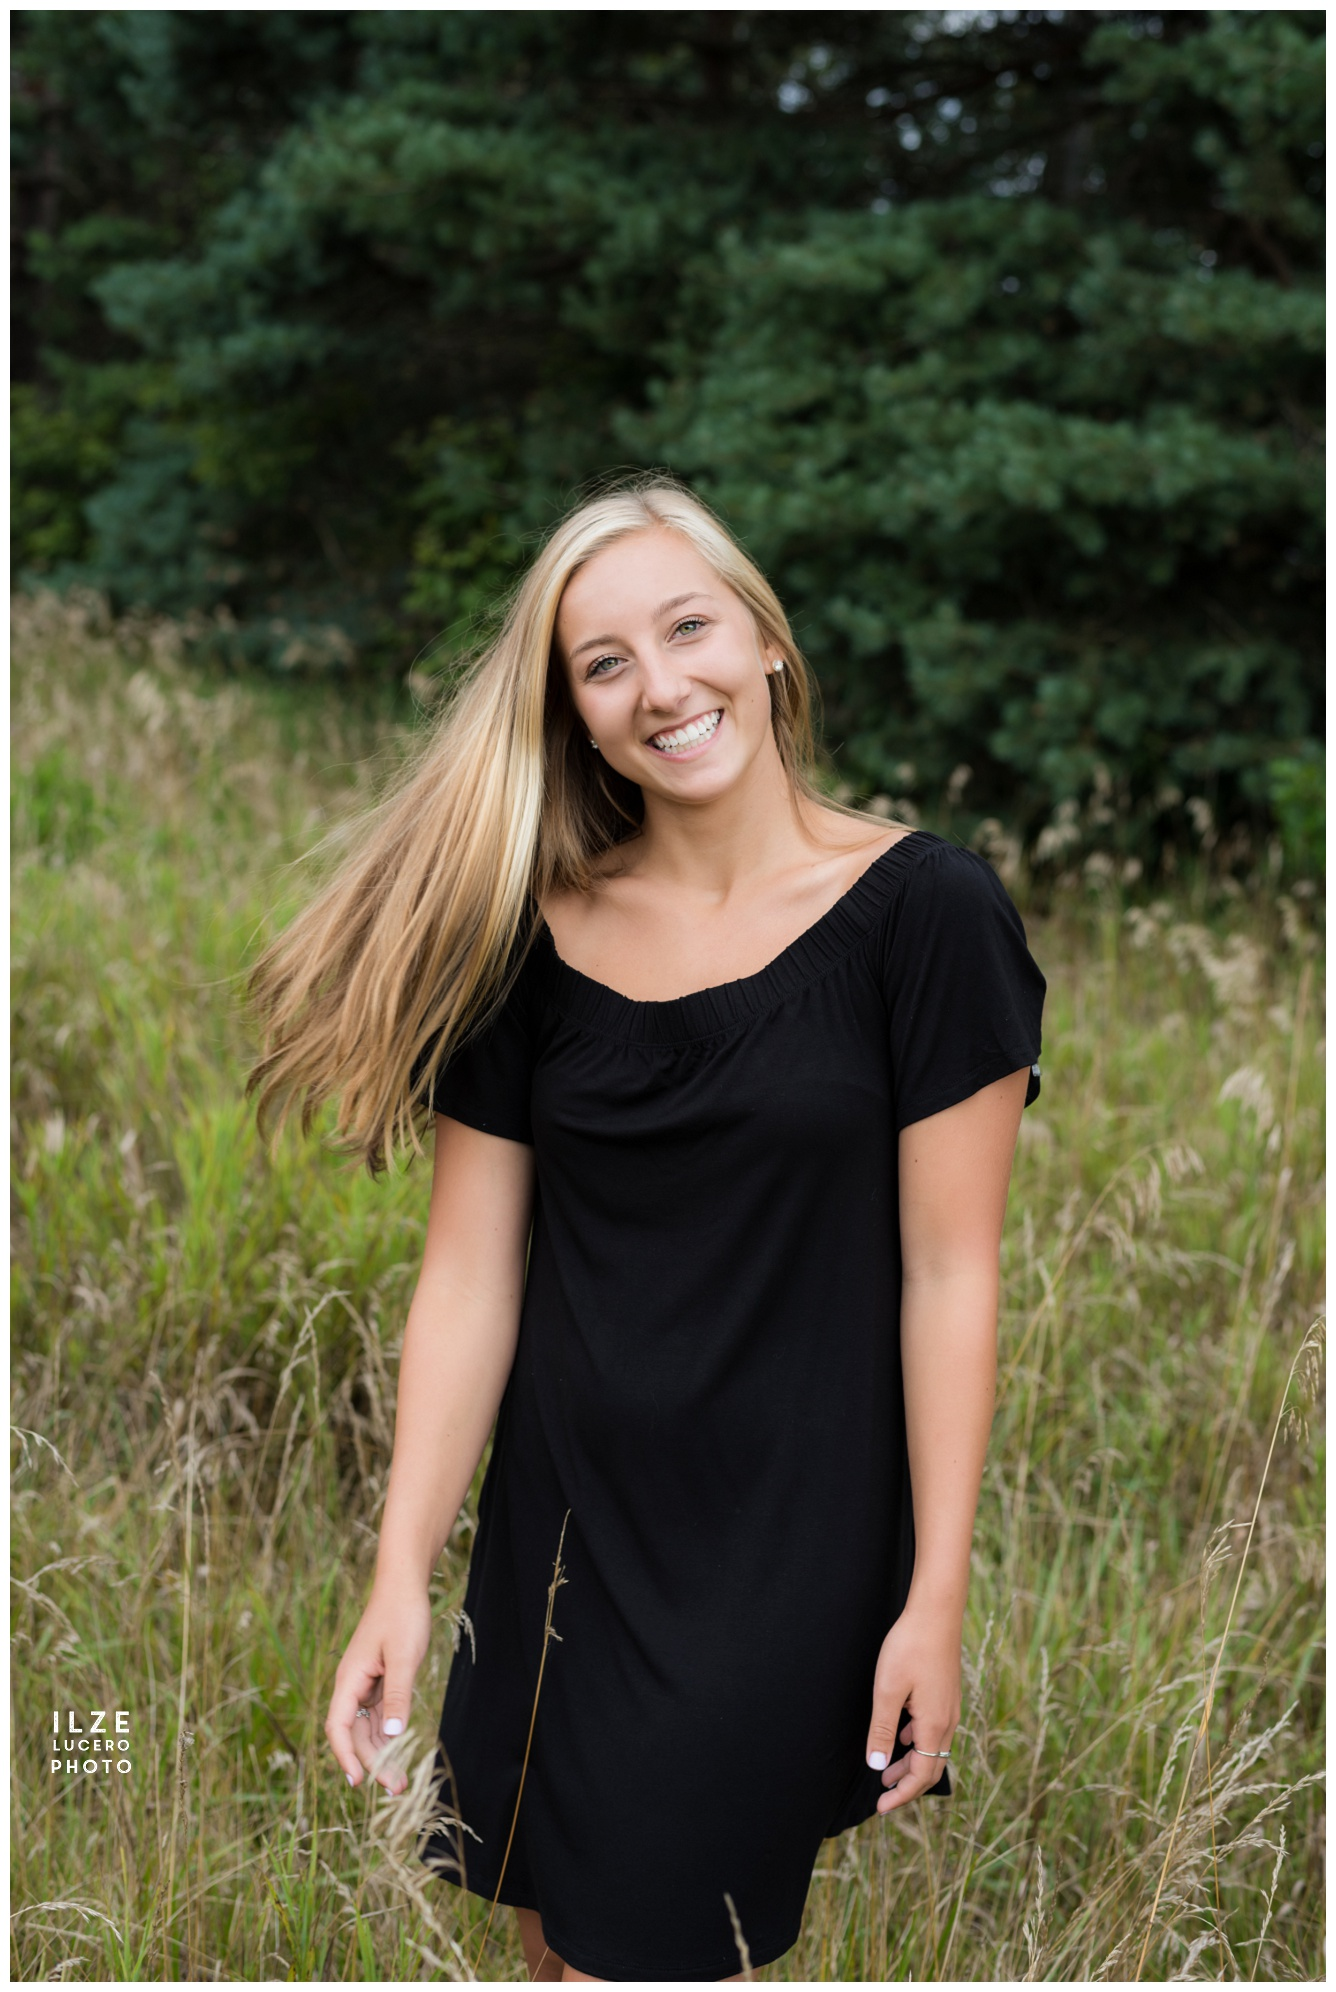 Ortonville senior photo shoot